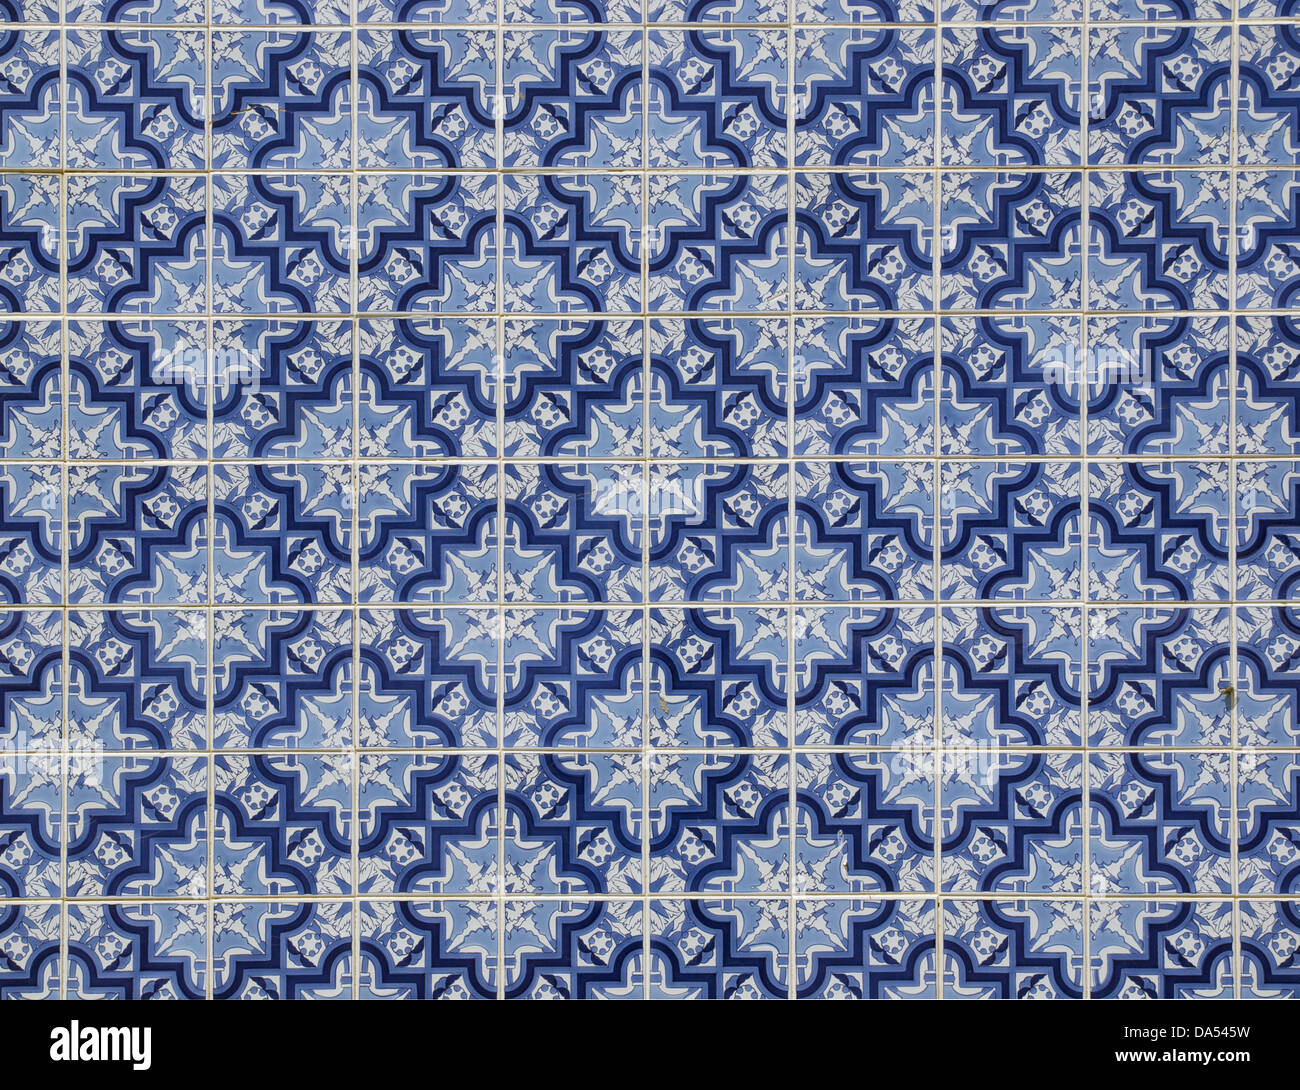 Typical Portugese Azulejos blue and white tiles Stock Photo